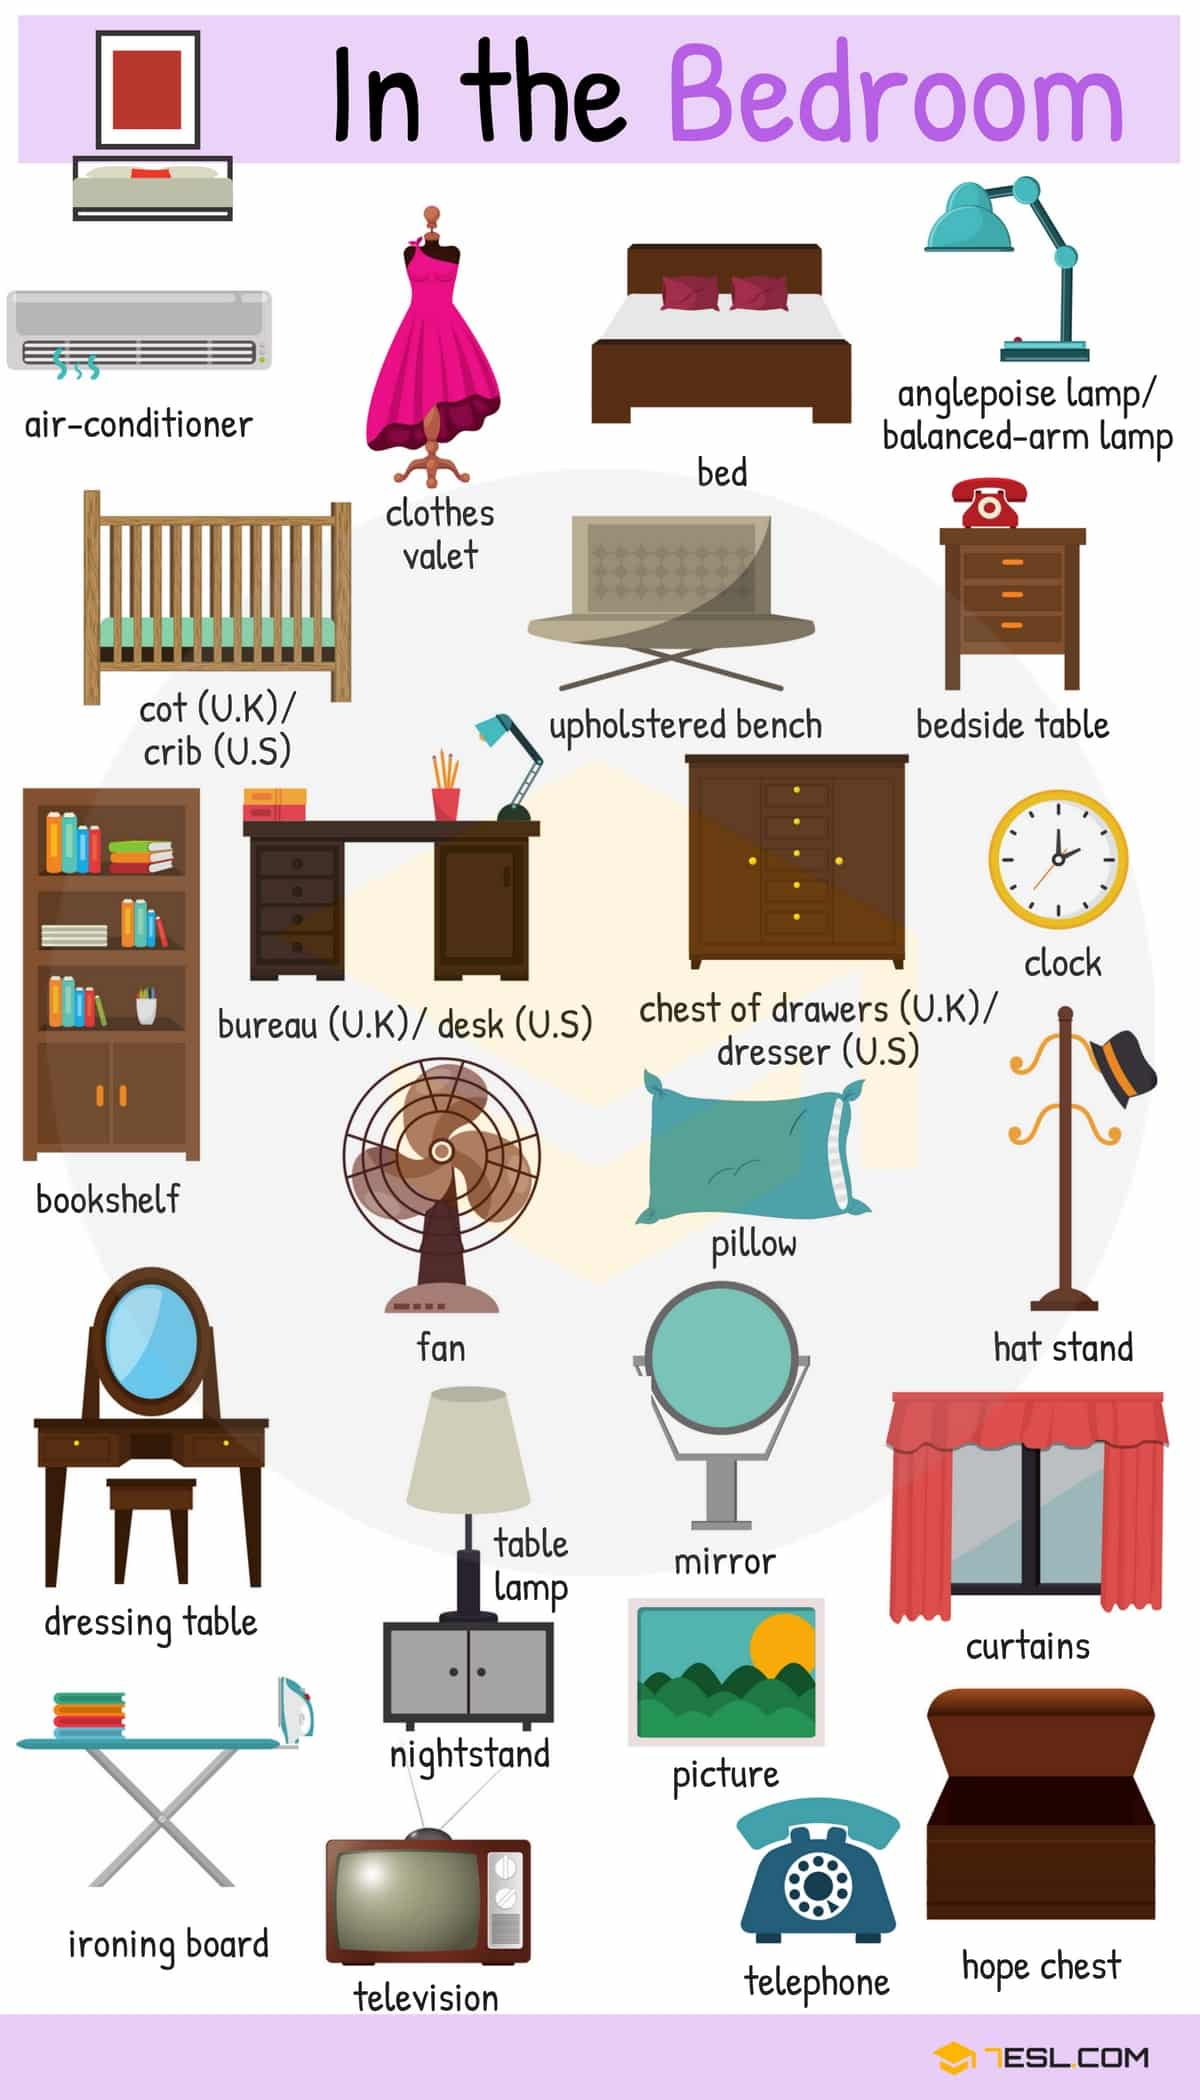 Bedroom Furniture: Things in the Bedroom with Pictures